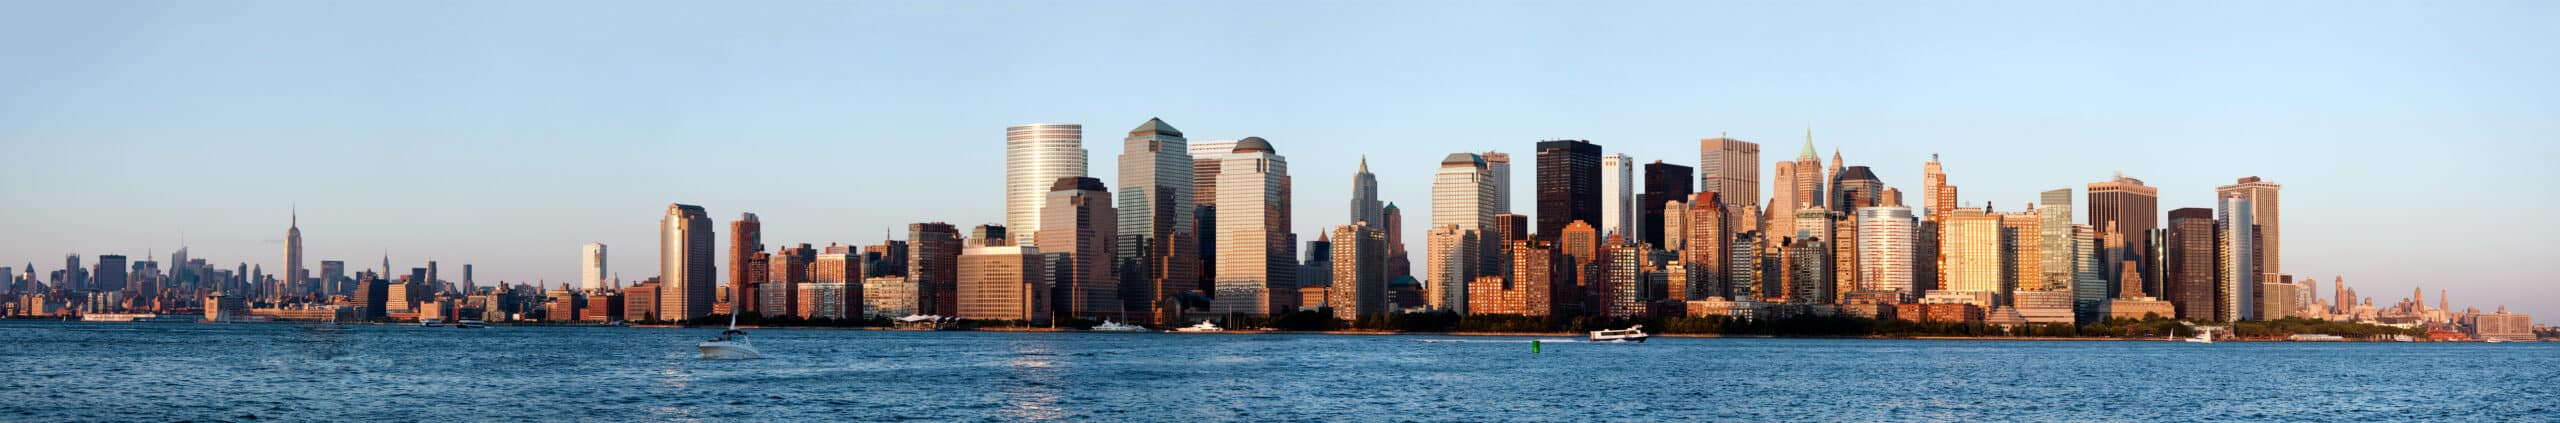 Battery Park City Manhattan, NY Private Investigator